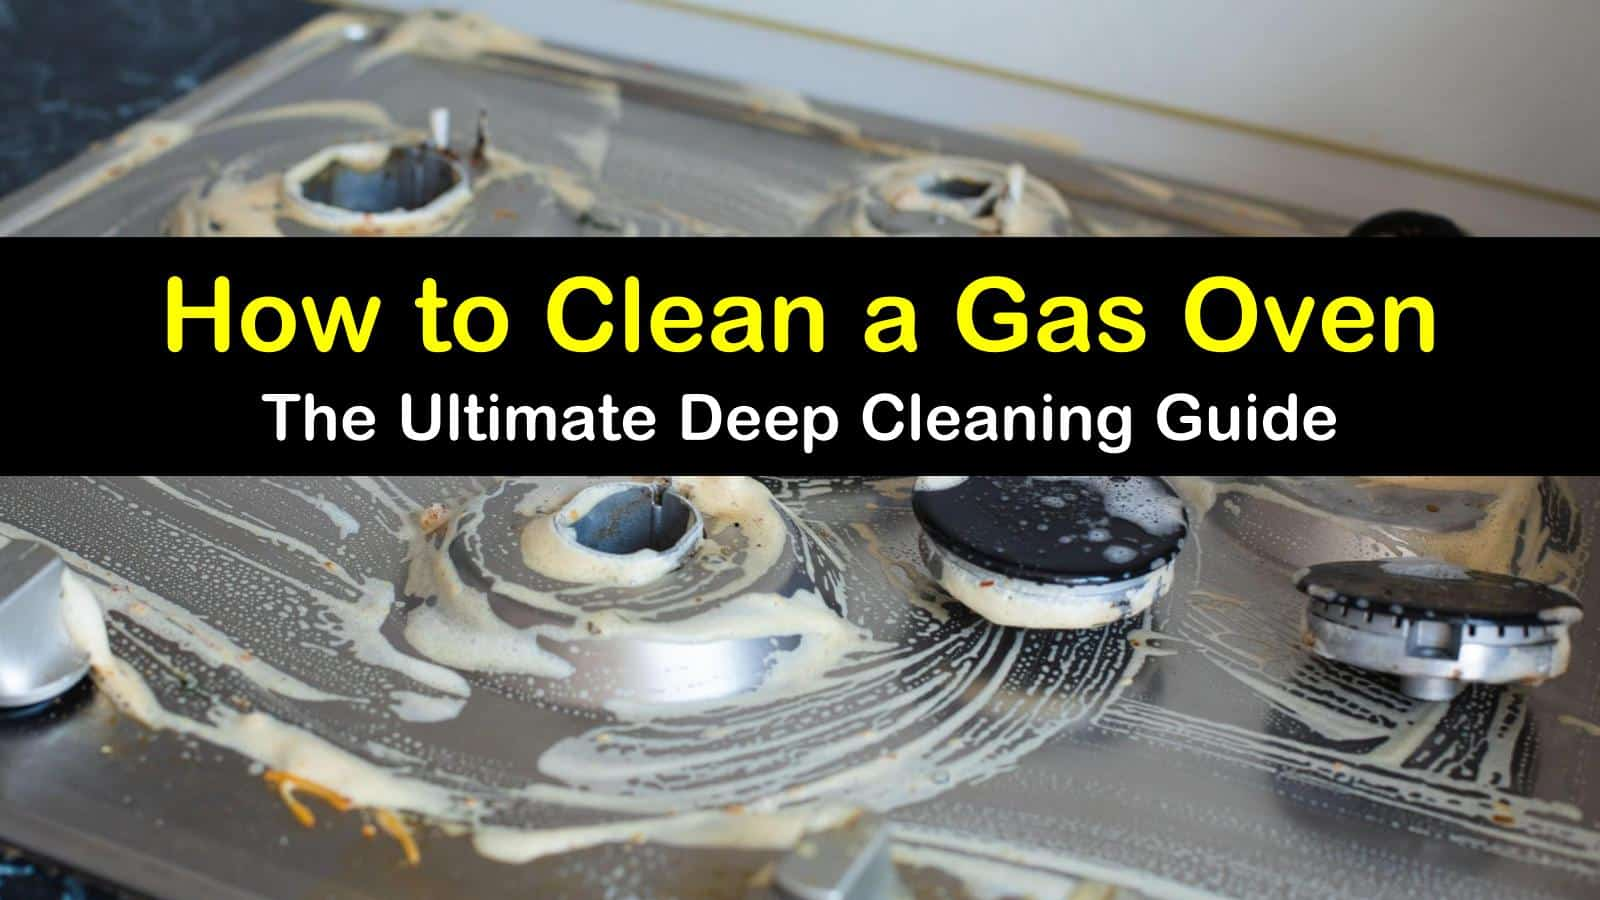 how to clean a gas oven titleimg1